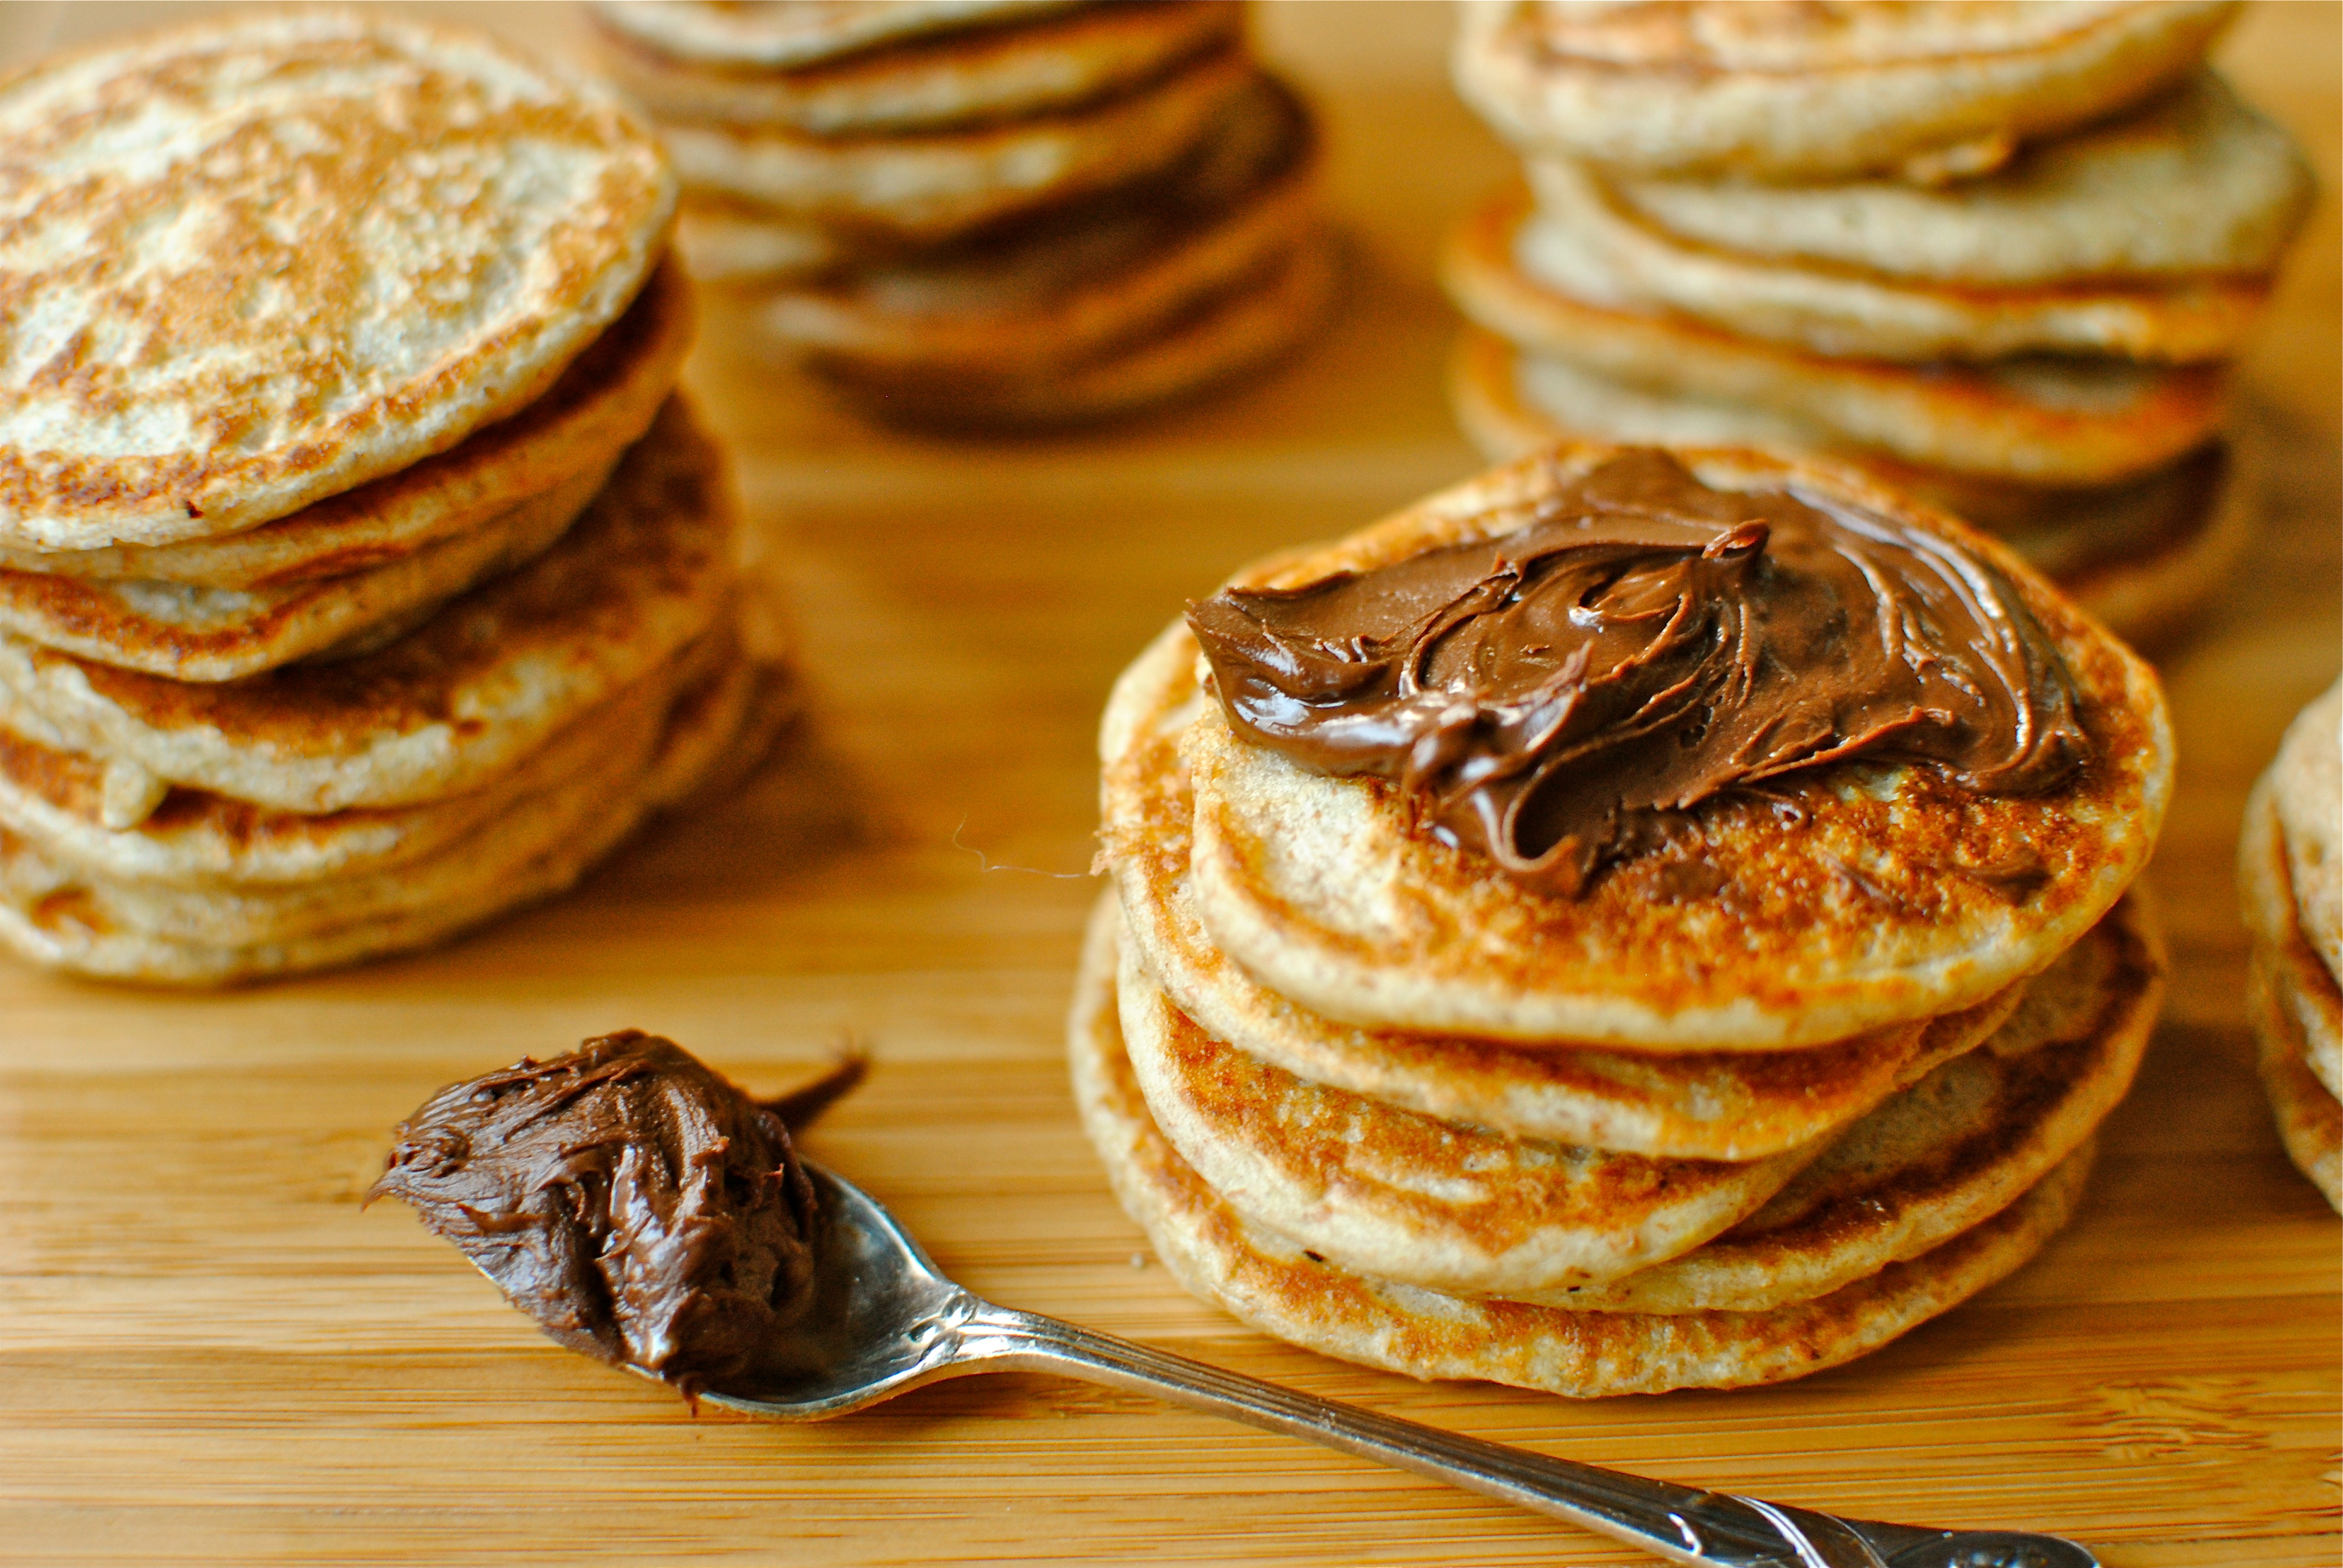 Forum on this topic: How to Make Blinis, how-to-make-blinis/